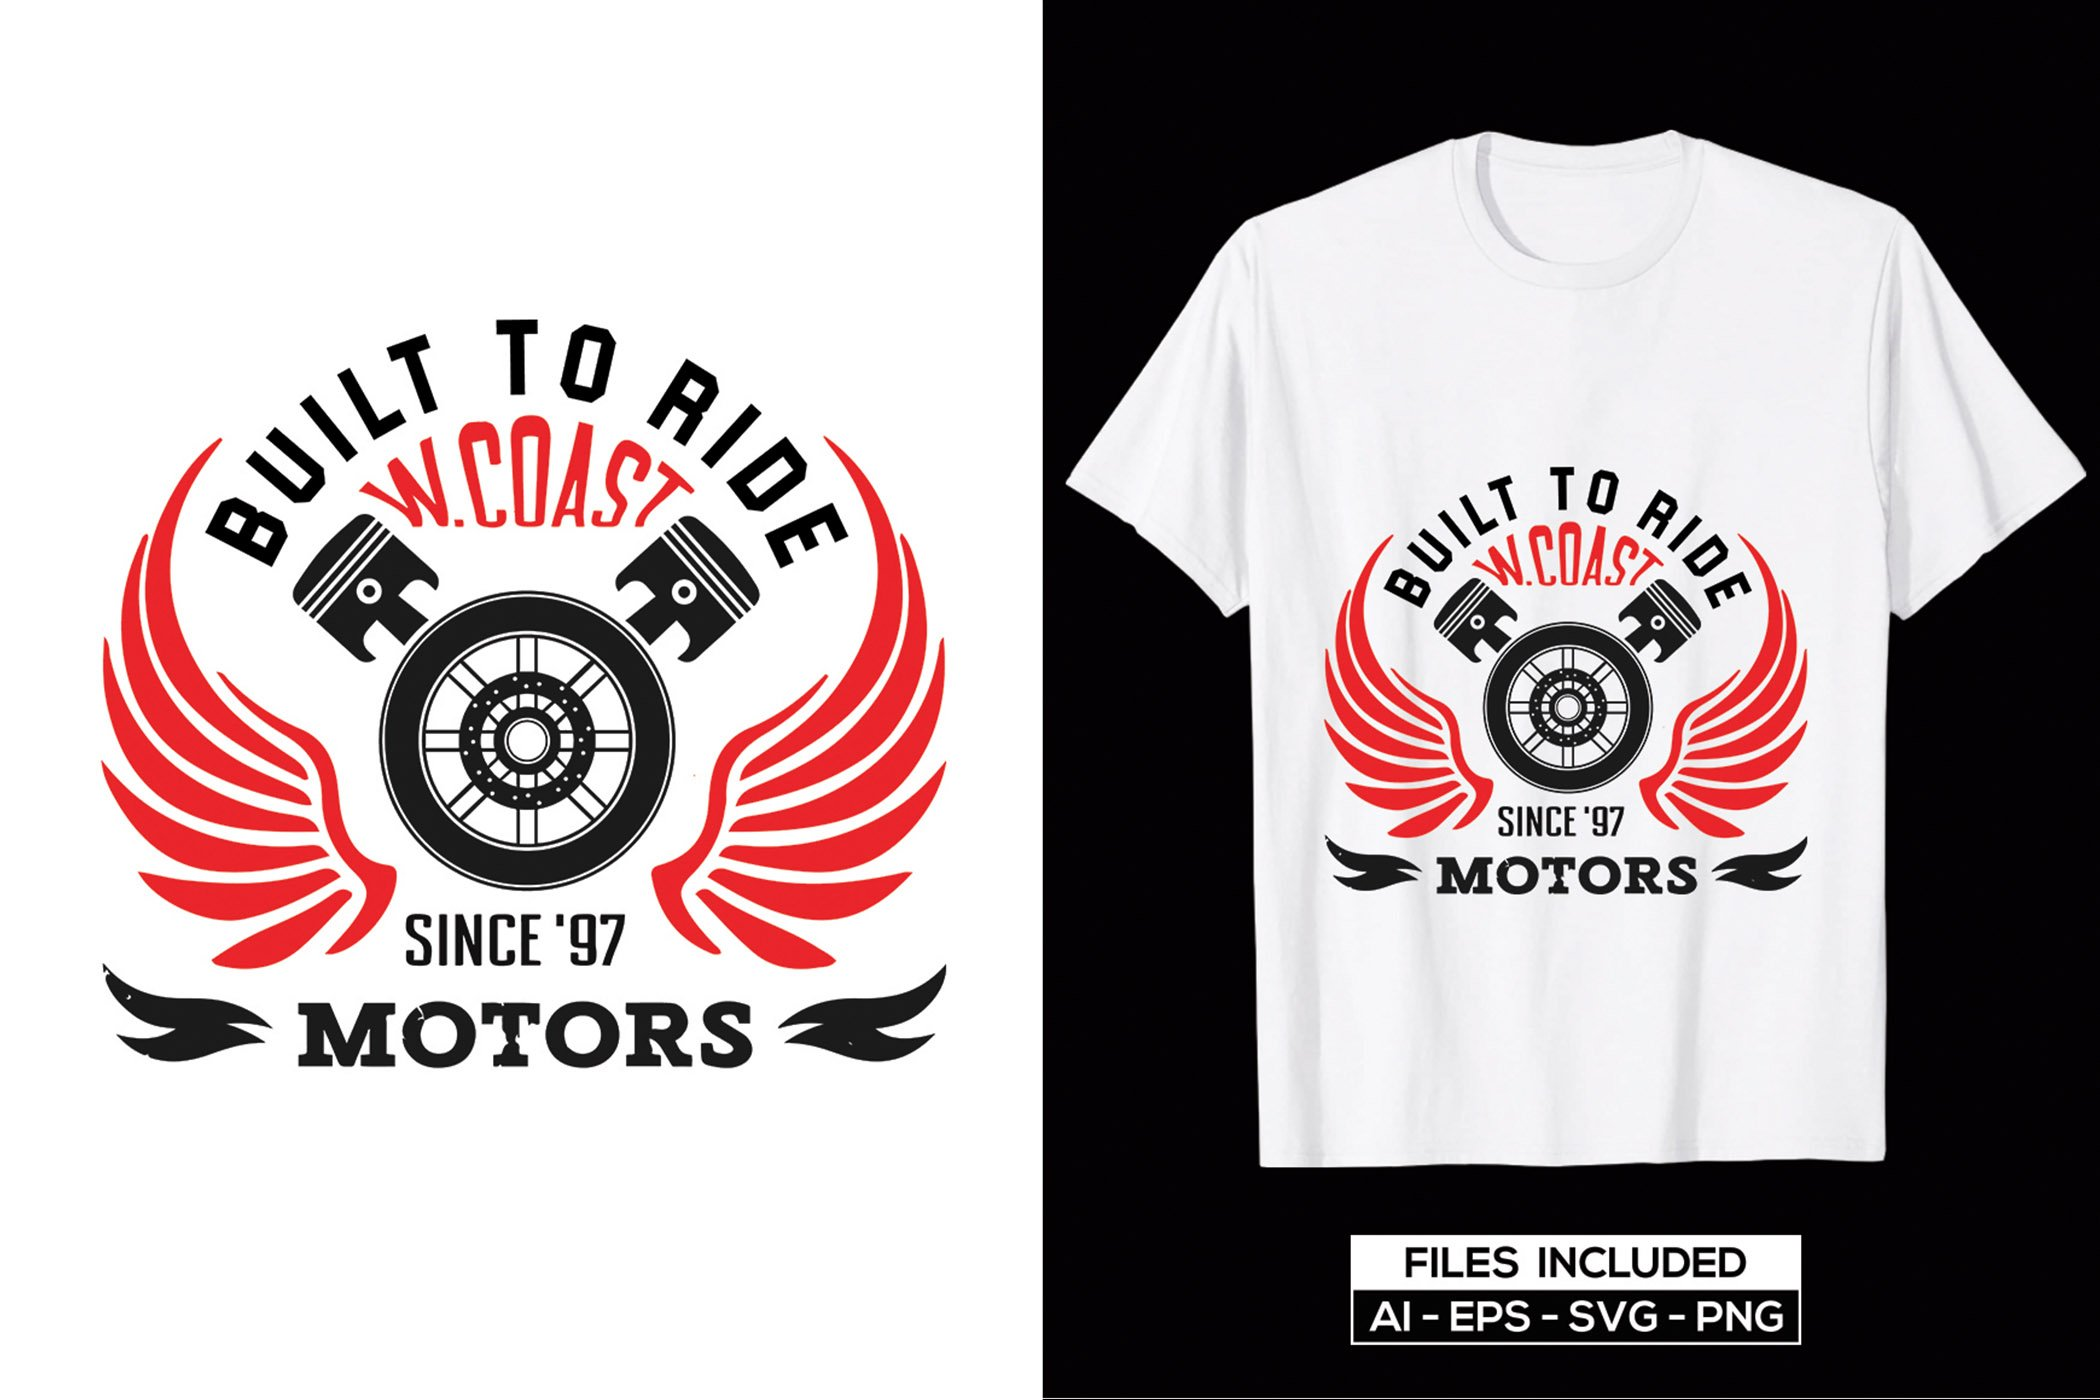 Crisp graphics in the form of motorcycle internals, etc. quality white t-shirt.